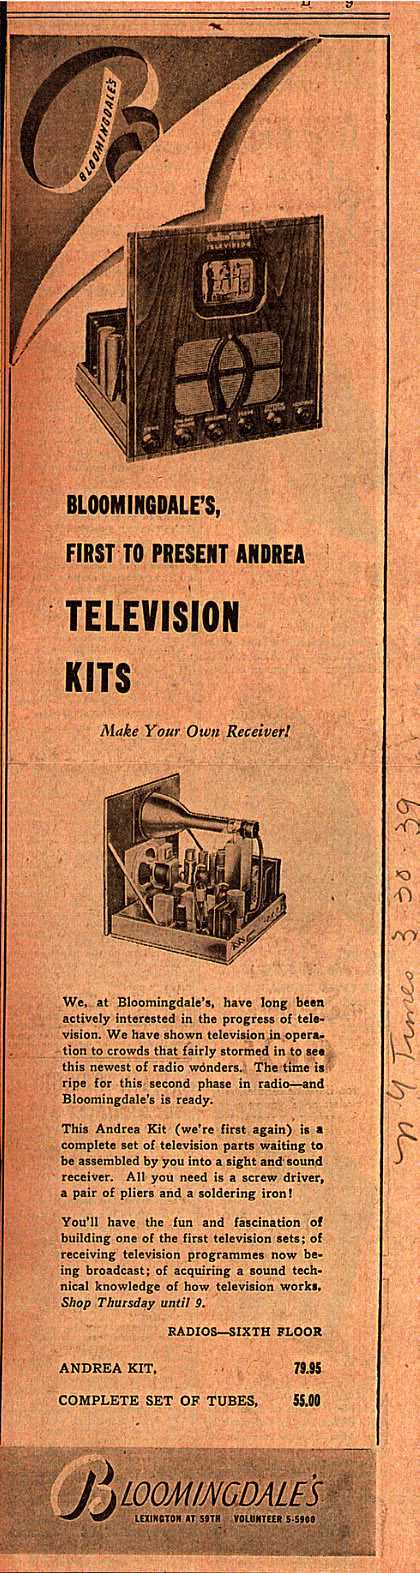 Bloomingdale's Andrea Television Kit – Bloomingdale's, First to Present Andrea Television Kits (1939)